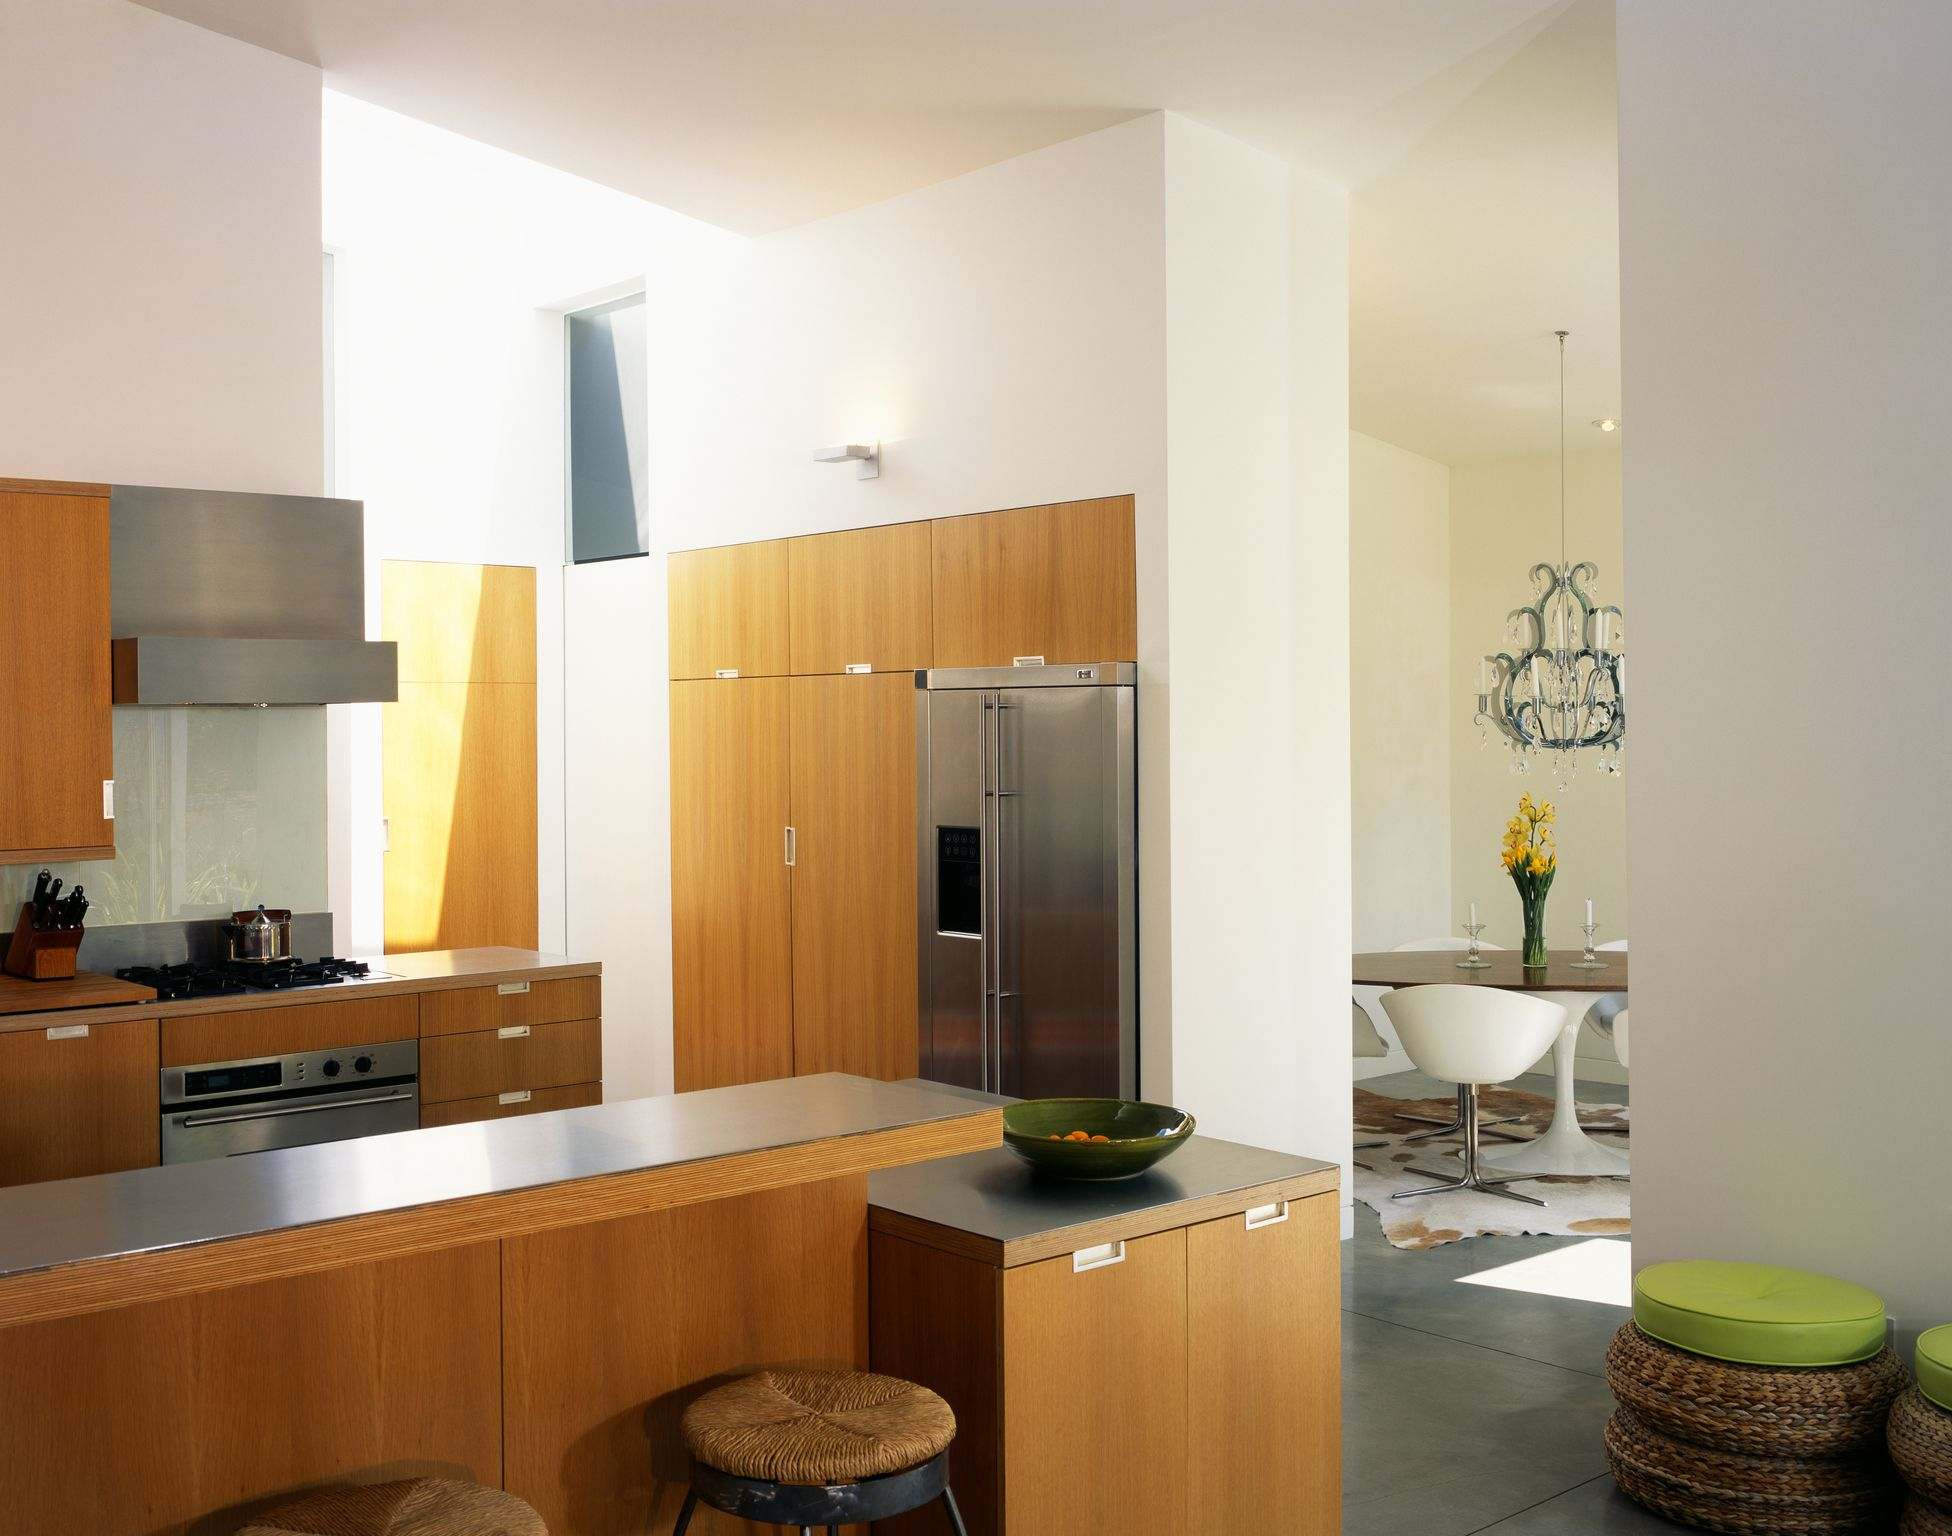 Best Flooring For Kitchens With High Traffic